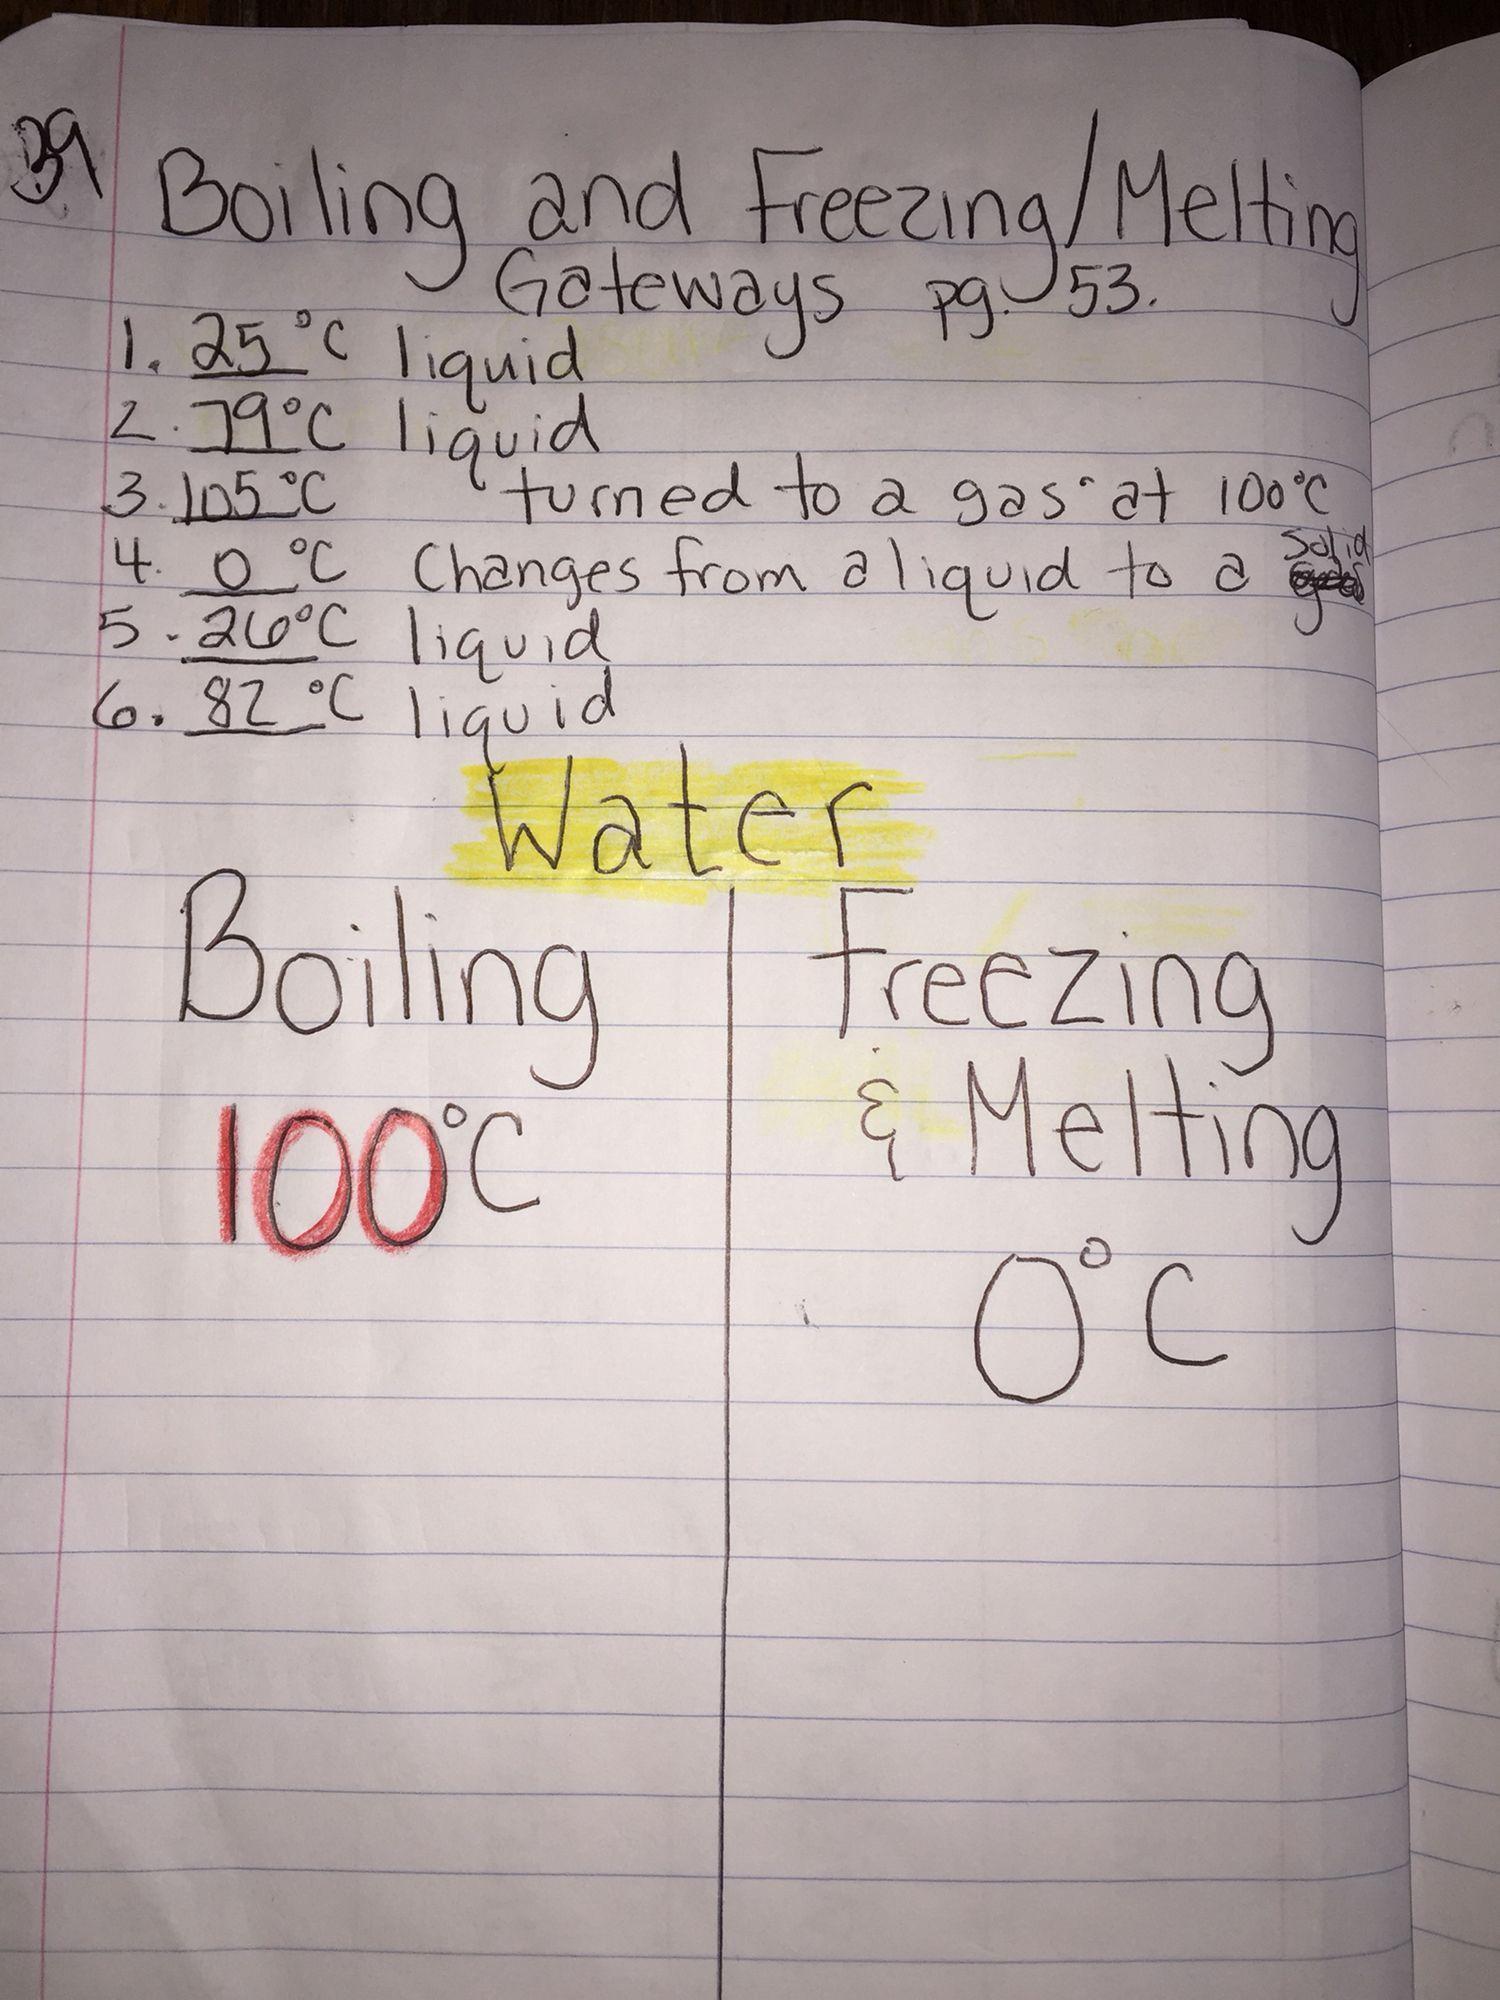 Boiling And Freezing Melting Points Of Water Gateways Book